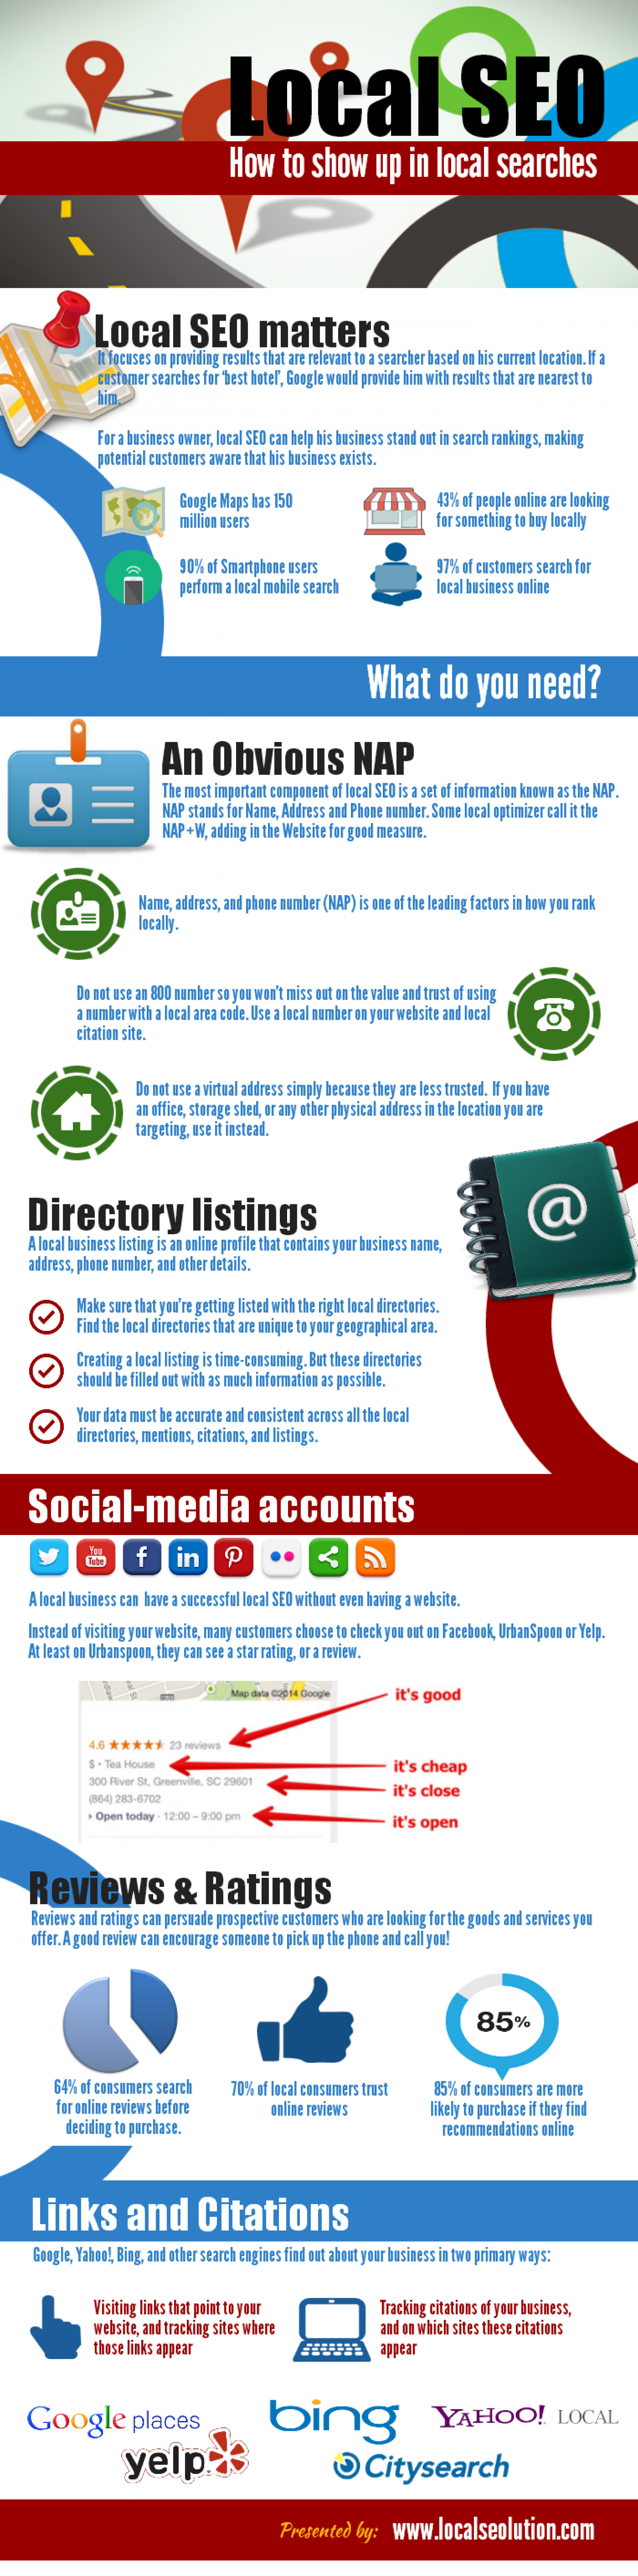 Local SEO - How to show up in local searches Infographic